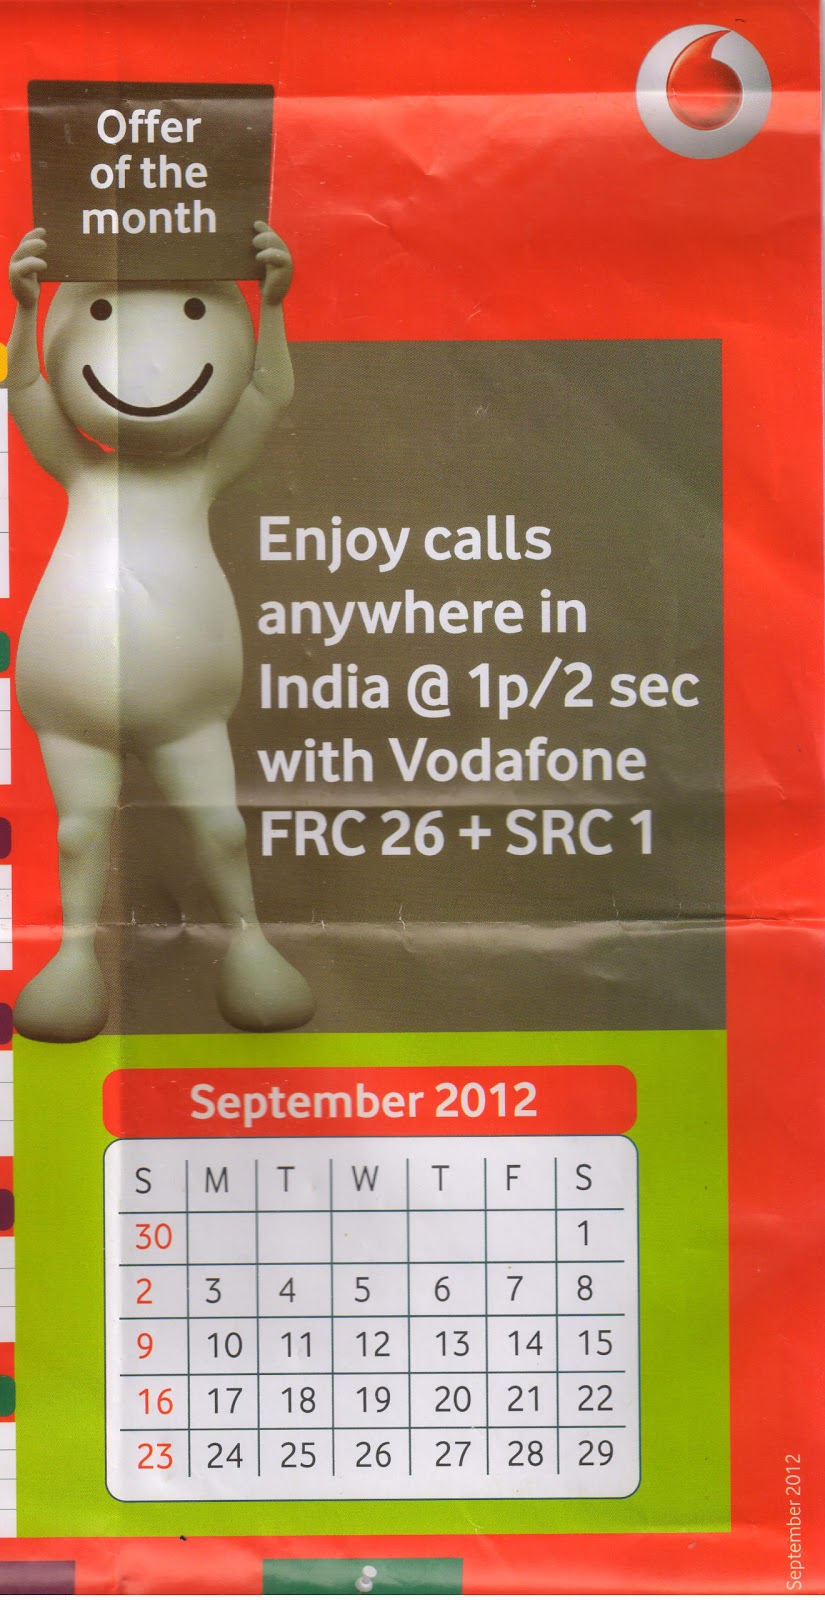 Free recharge coupons for vodafone postpaid